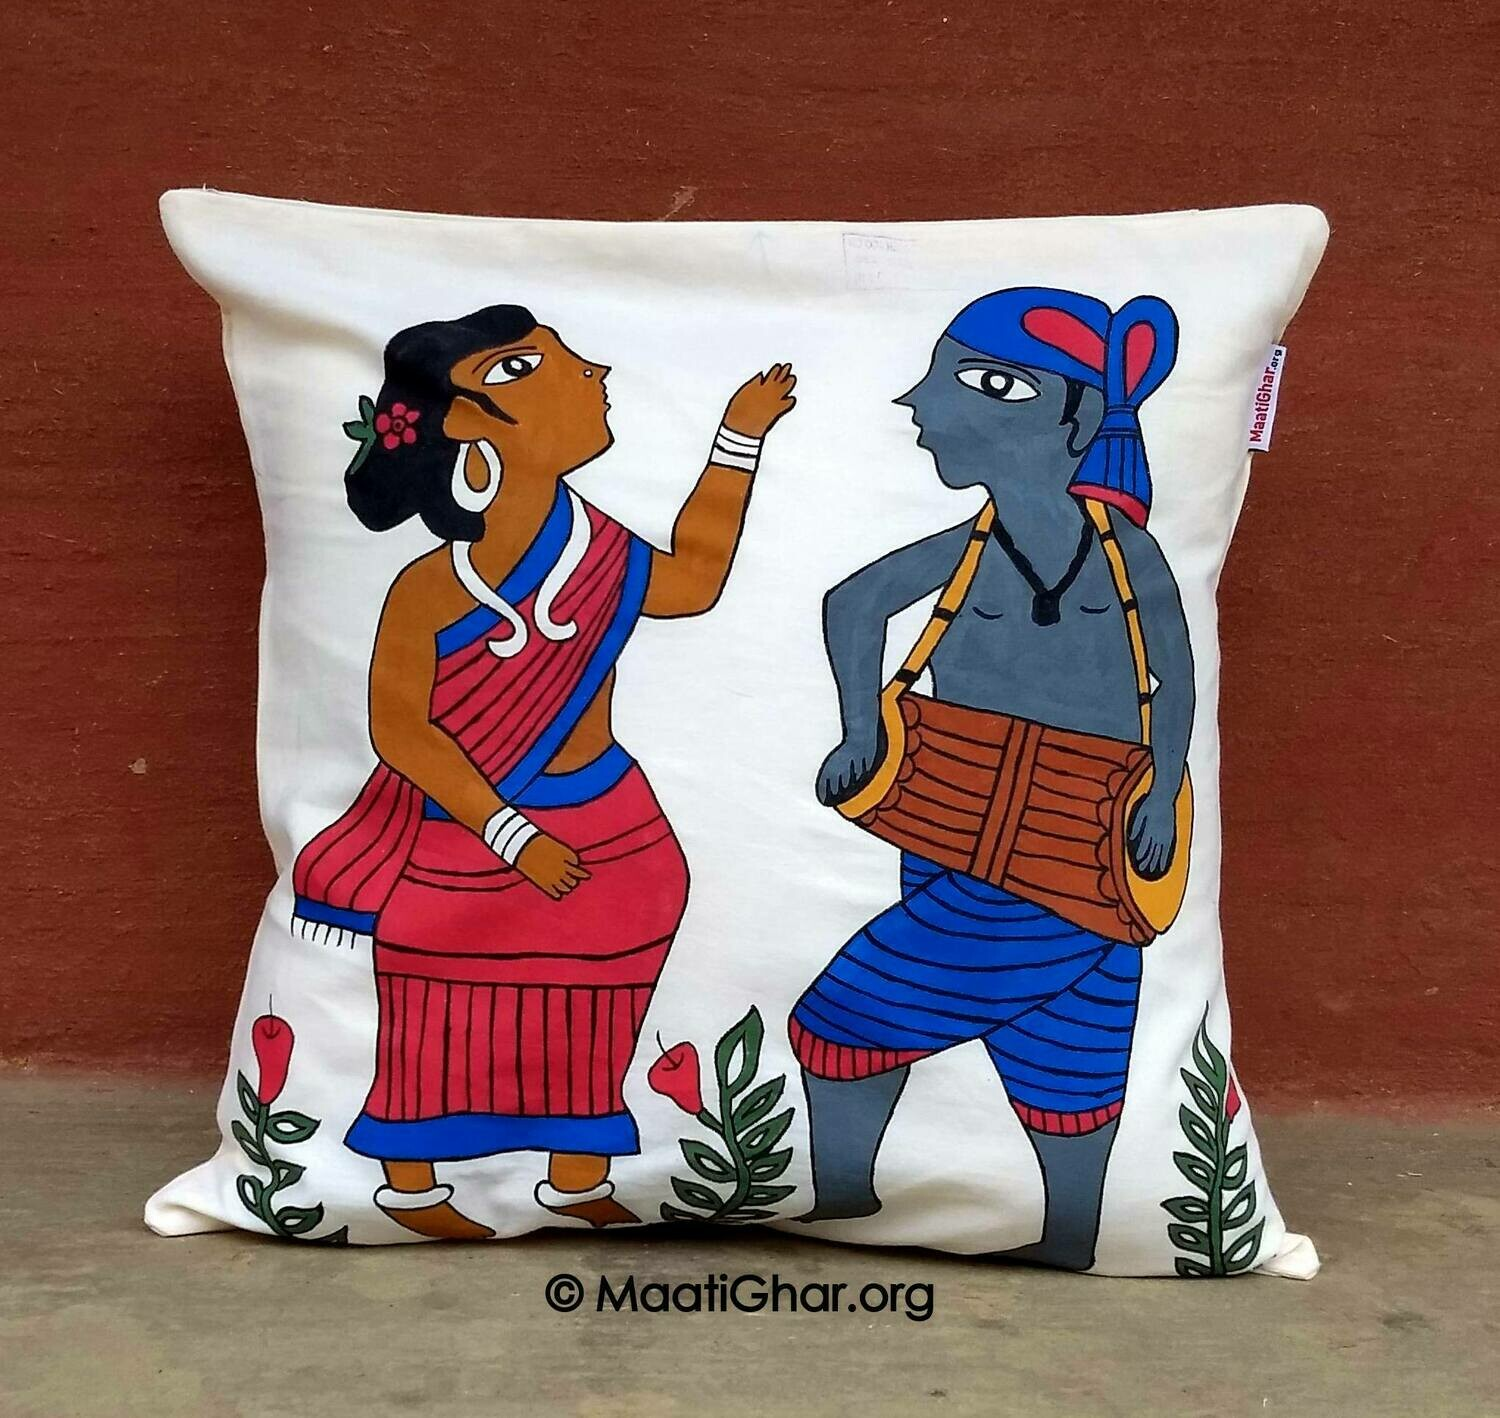 Paitkar Painting Cotton Cushion Cover - Celebration (16 in x 16 in)